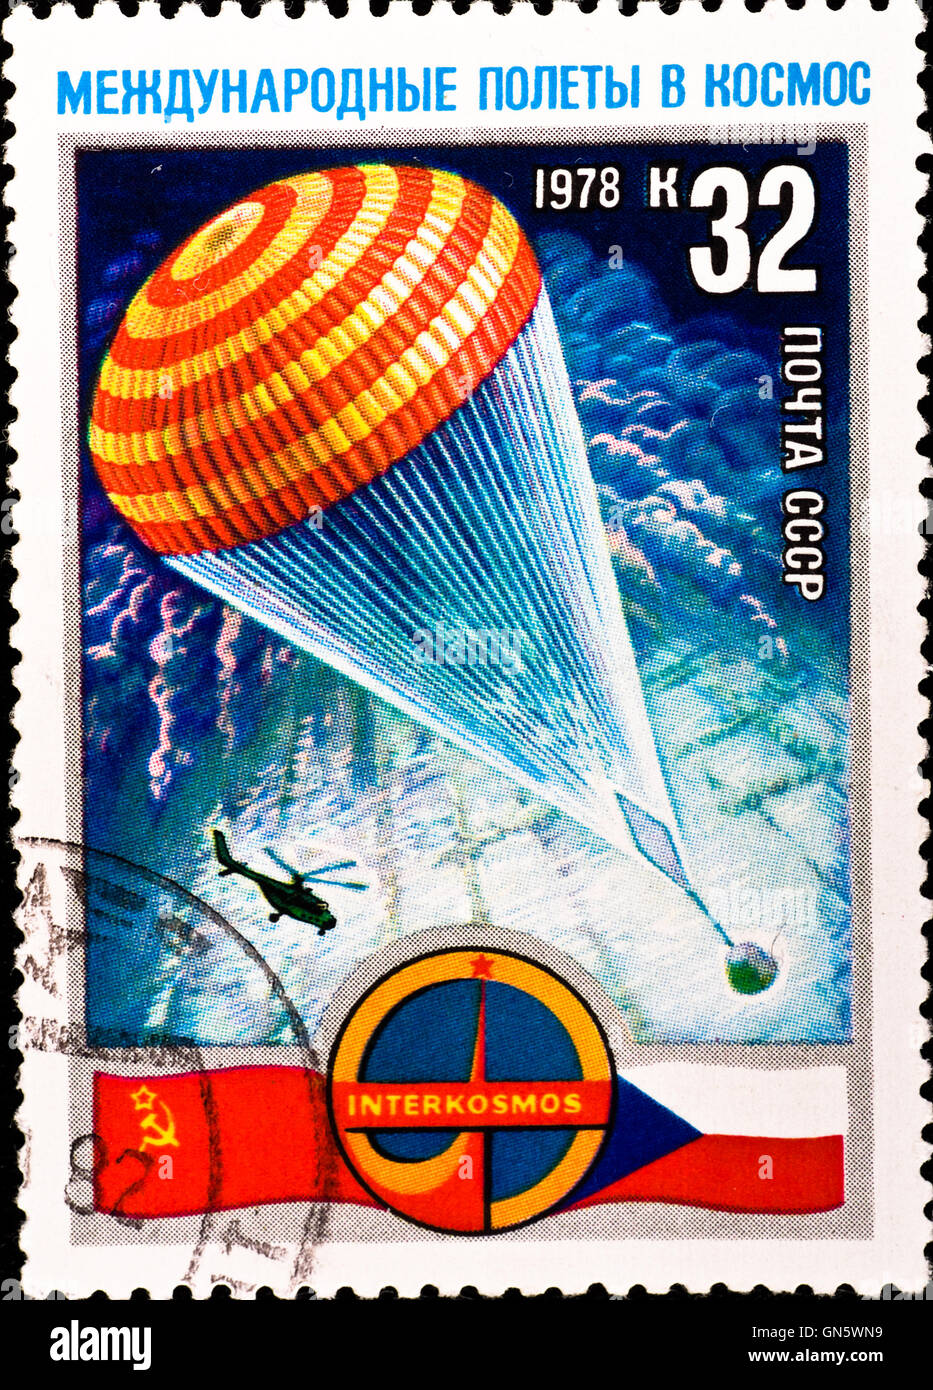 postage stamp shows parachute with spacecraft capsule - Stock Image